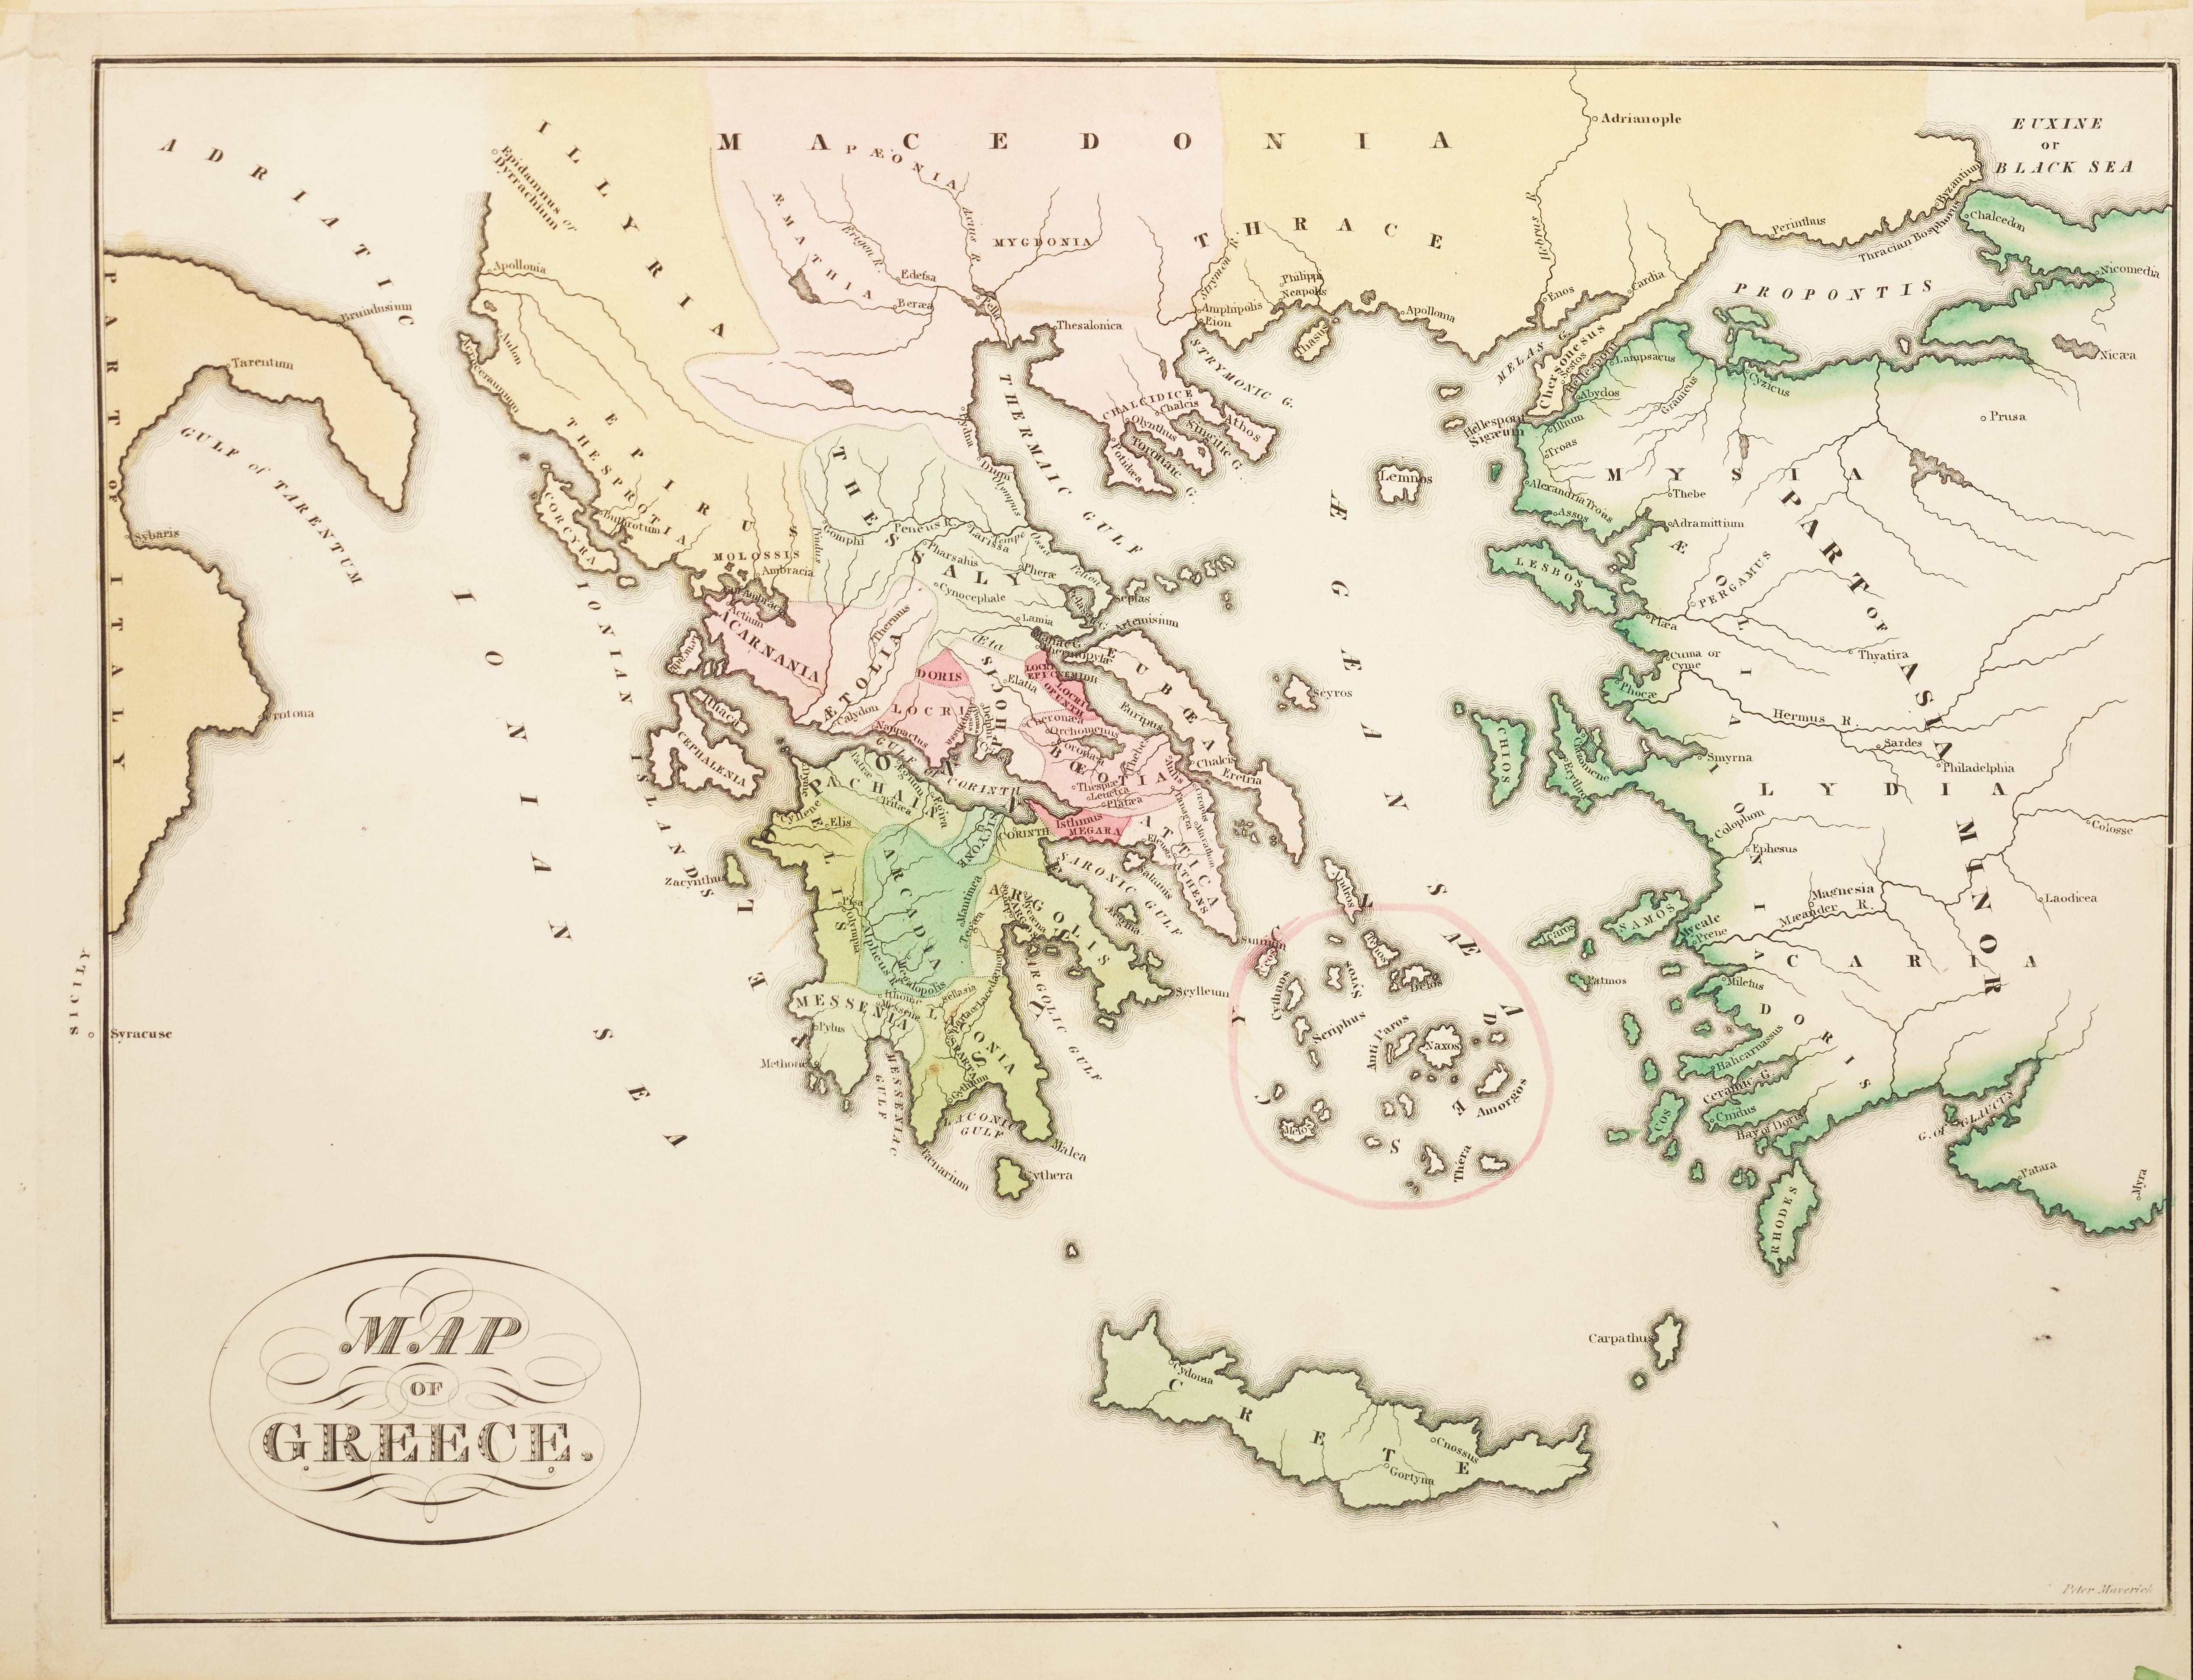 Map of greece 1828 old maps pinterest explore old maps world history and more map of greece 1828 sciox Gallery